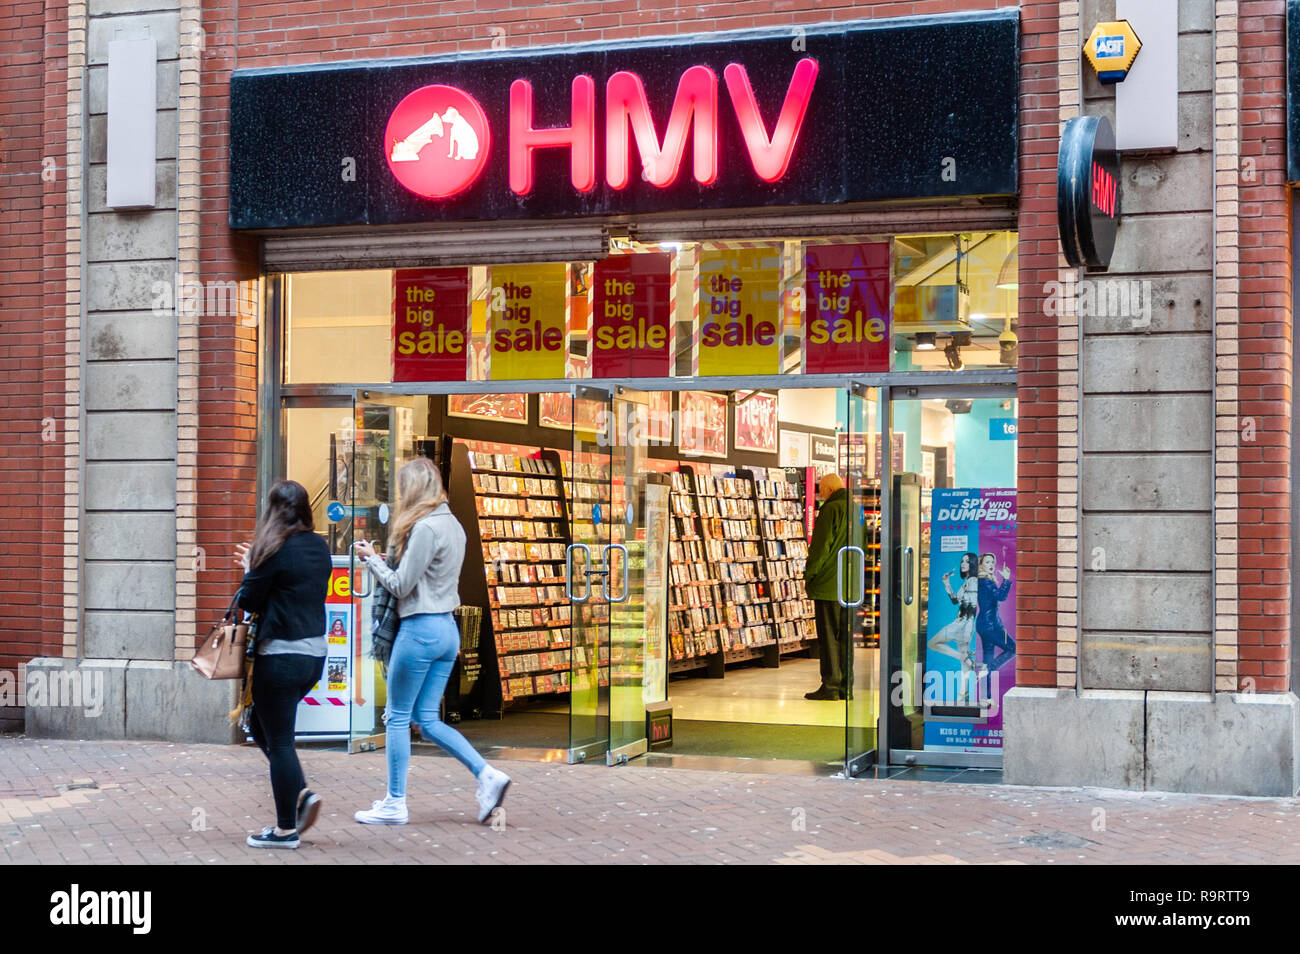 blackpool-uk-28th-dec-2018-shoppers-pass-hmv-in-blackpool-as-the-national-chain-is-facing-administration-this-week-putting-2200-jobs-at-risk-the-chain-which-operates-130-stores-has-fallen-victim-of-online-streaming-services-credit-andy-gibsonalamy-live-news-R9RTT9.jpg